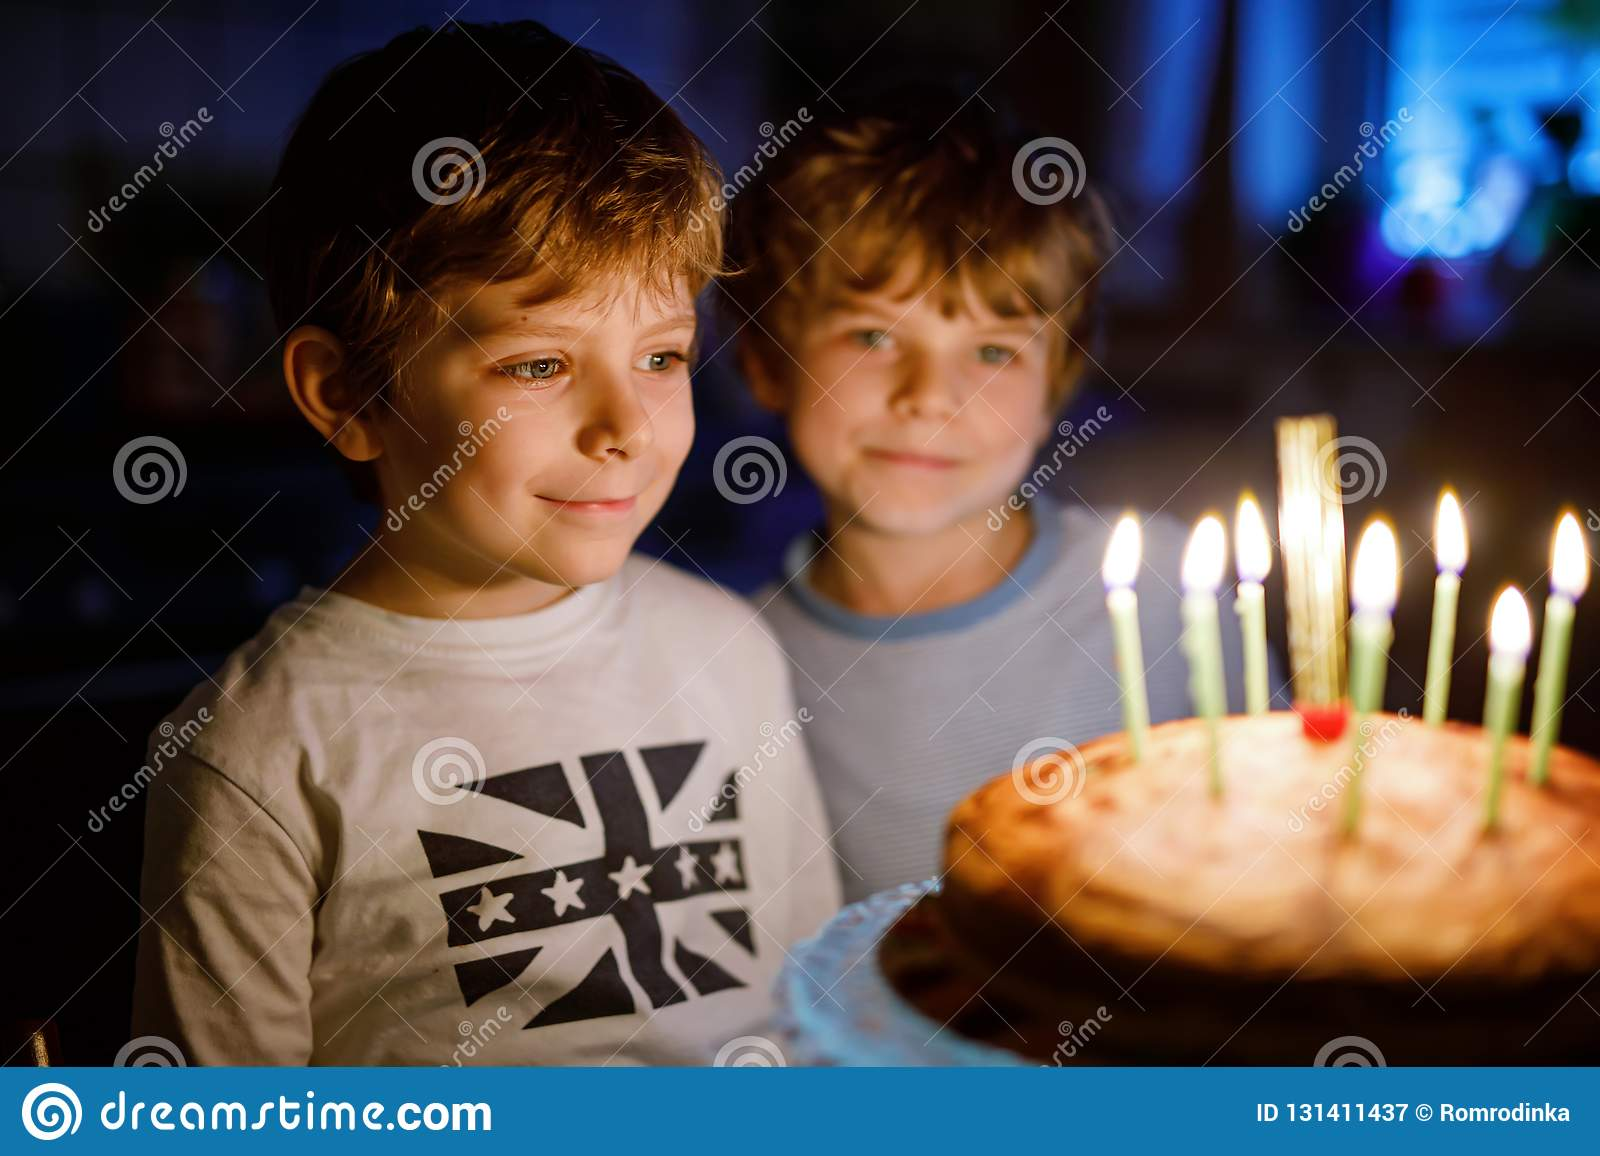 Two Beautiful Kids Little Preschool Boys Celebrating